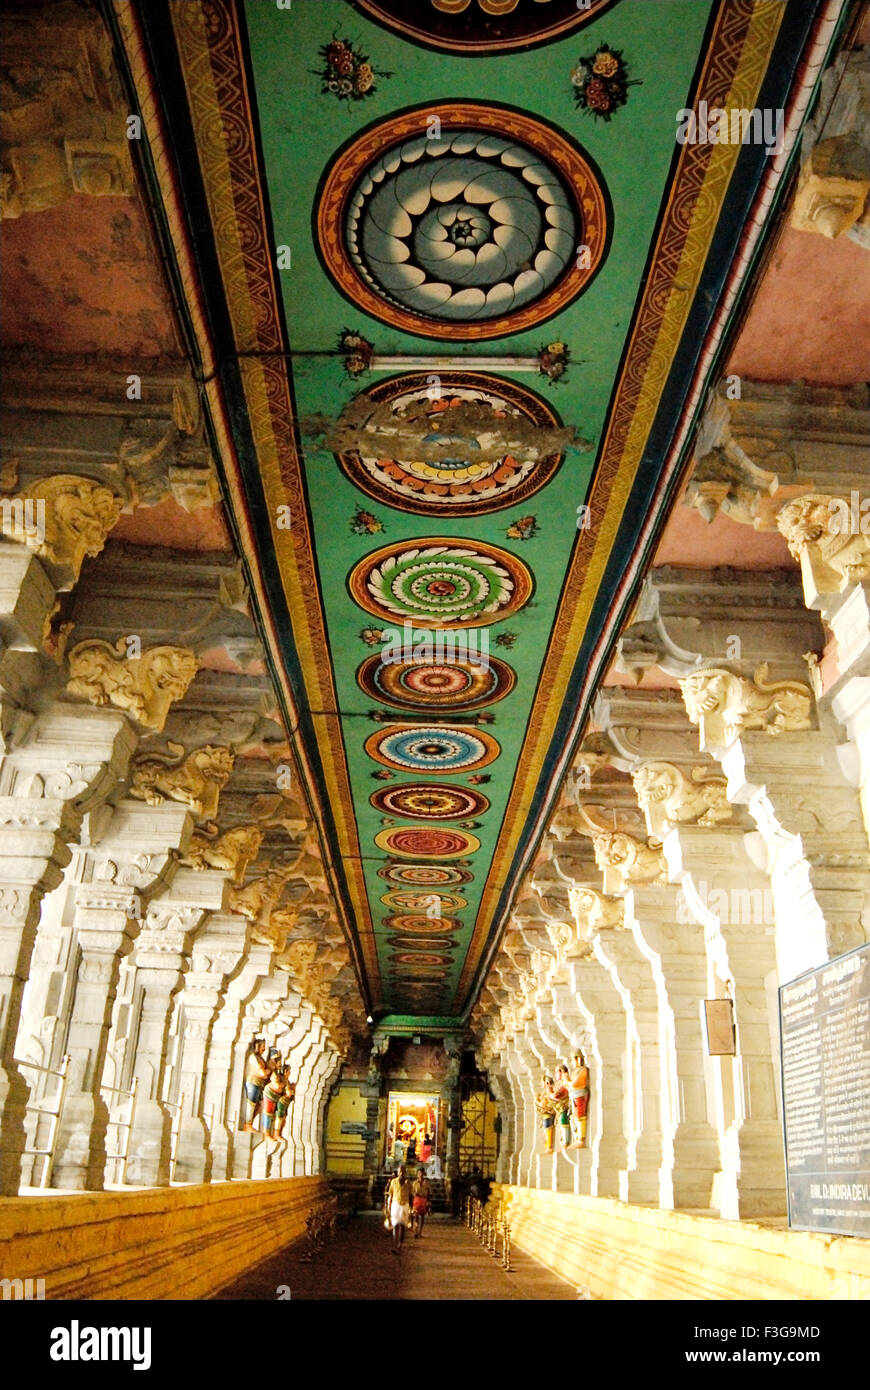 Richly decorated magnificent corridor at Rameswaram temple ; Char Dham ; Tamil Nadu ; India - Stock Image